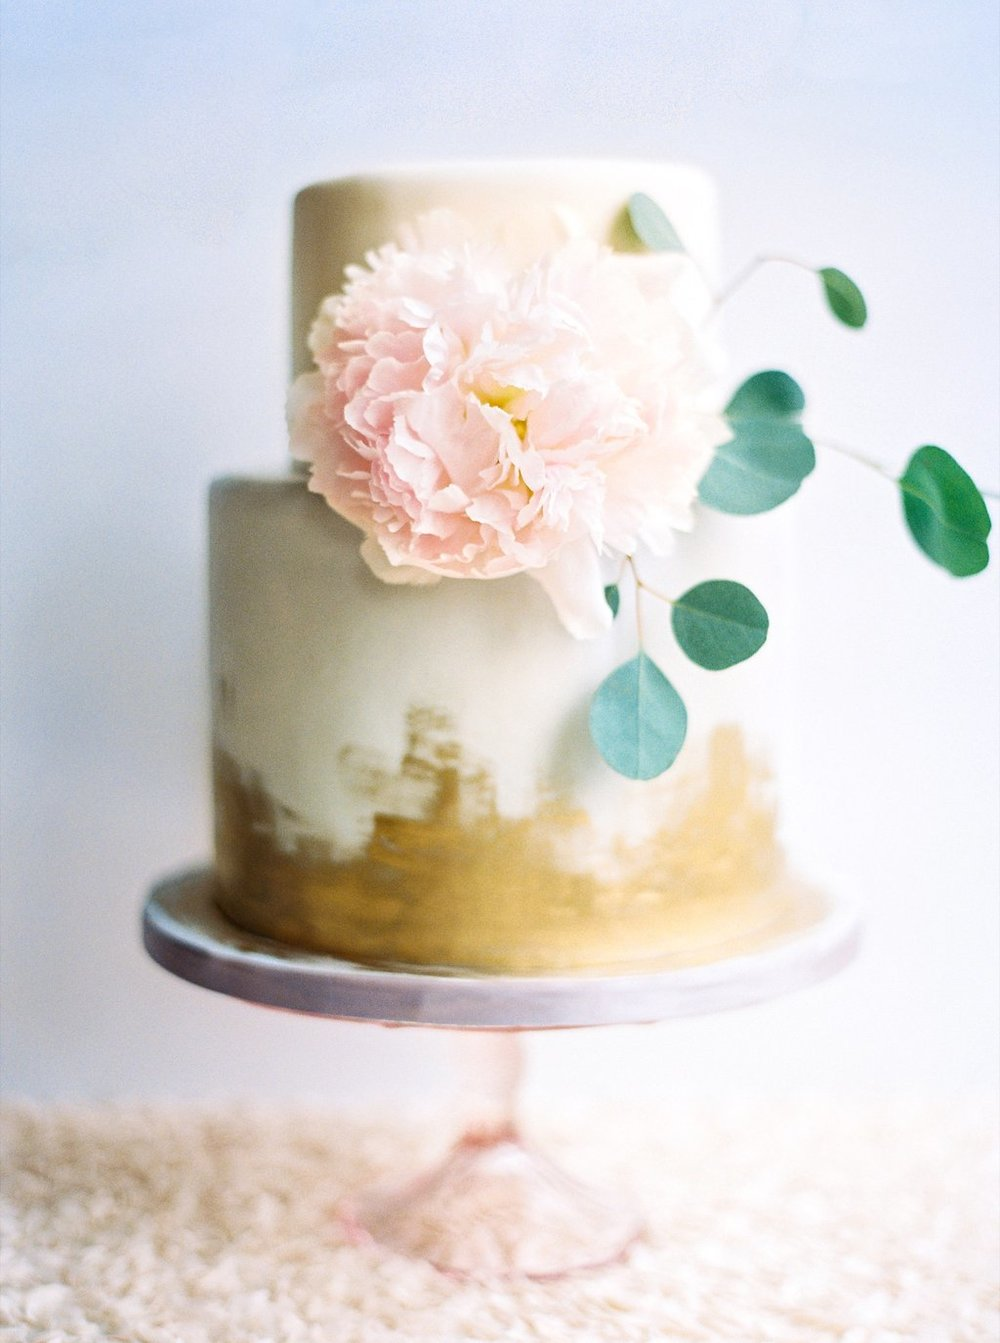 Best Southern Wedding Cake Bakeries | Simply Jessica Marie's Gold Painted Wedding Cake by Art of Cakes Bakery photographed by Perry Vaile as seen on the Draper James Blog